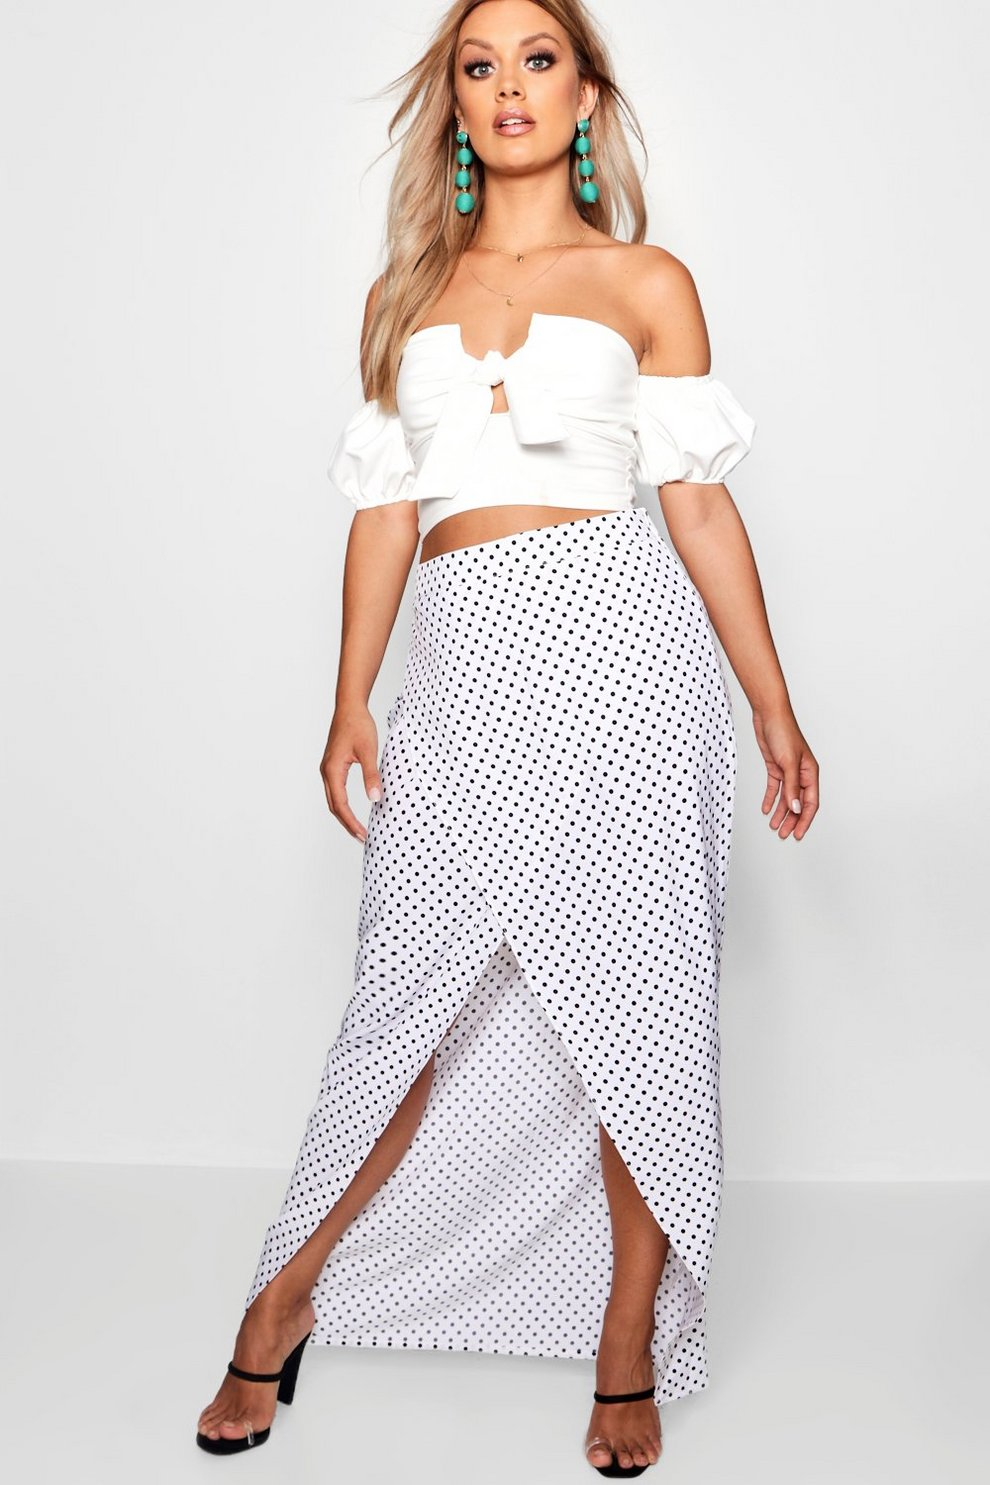 Discount Pay With Visa Cheap Sale Get Authentic Boohoo Plus Jess Spot Wrap Maxi Skirt Factory Sale Outlet Popular Where Can I Order a4jLaEswQ